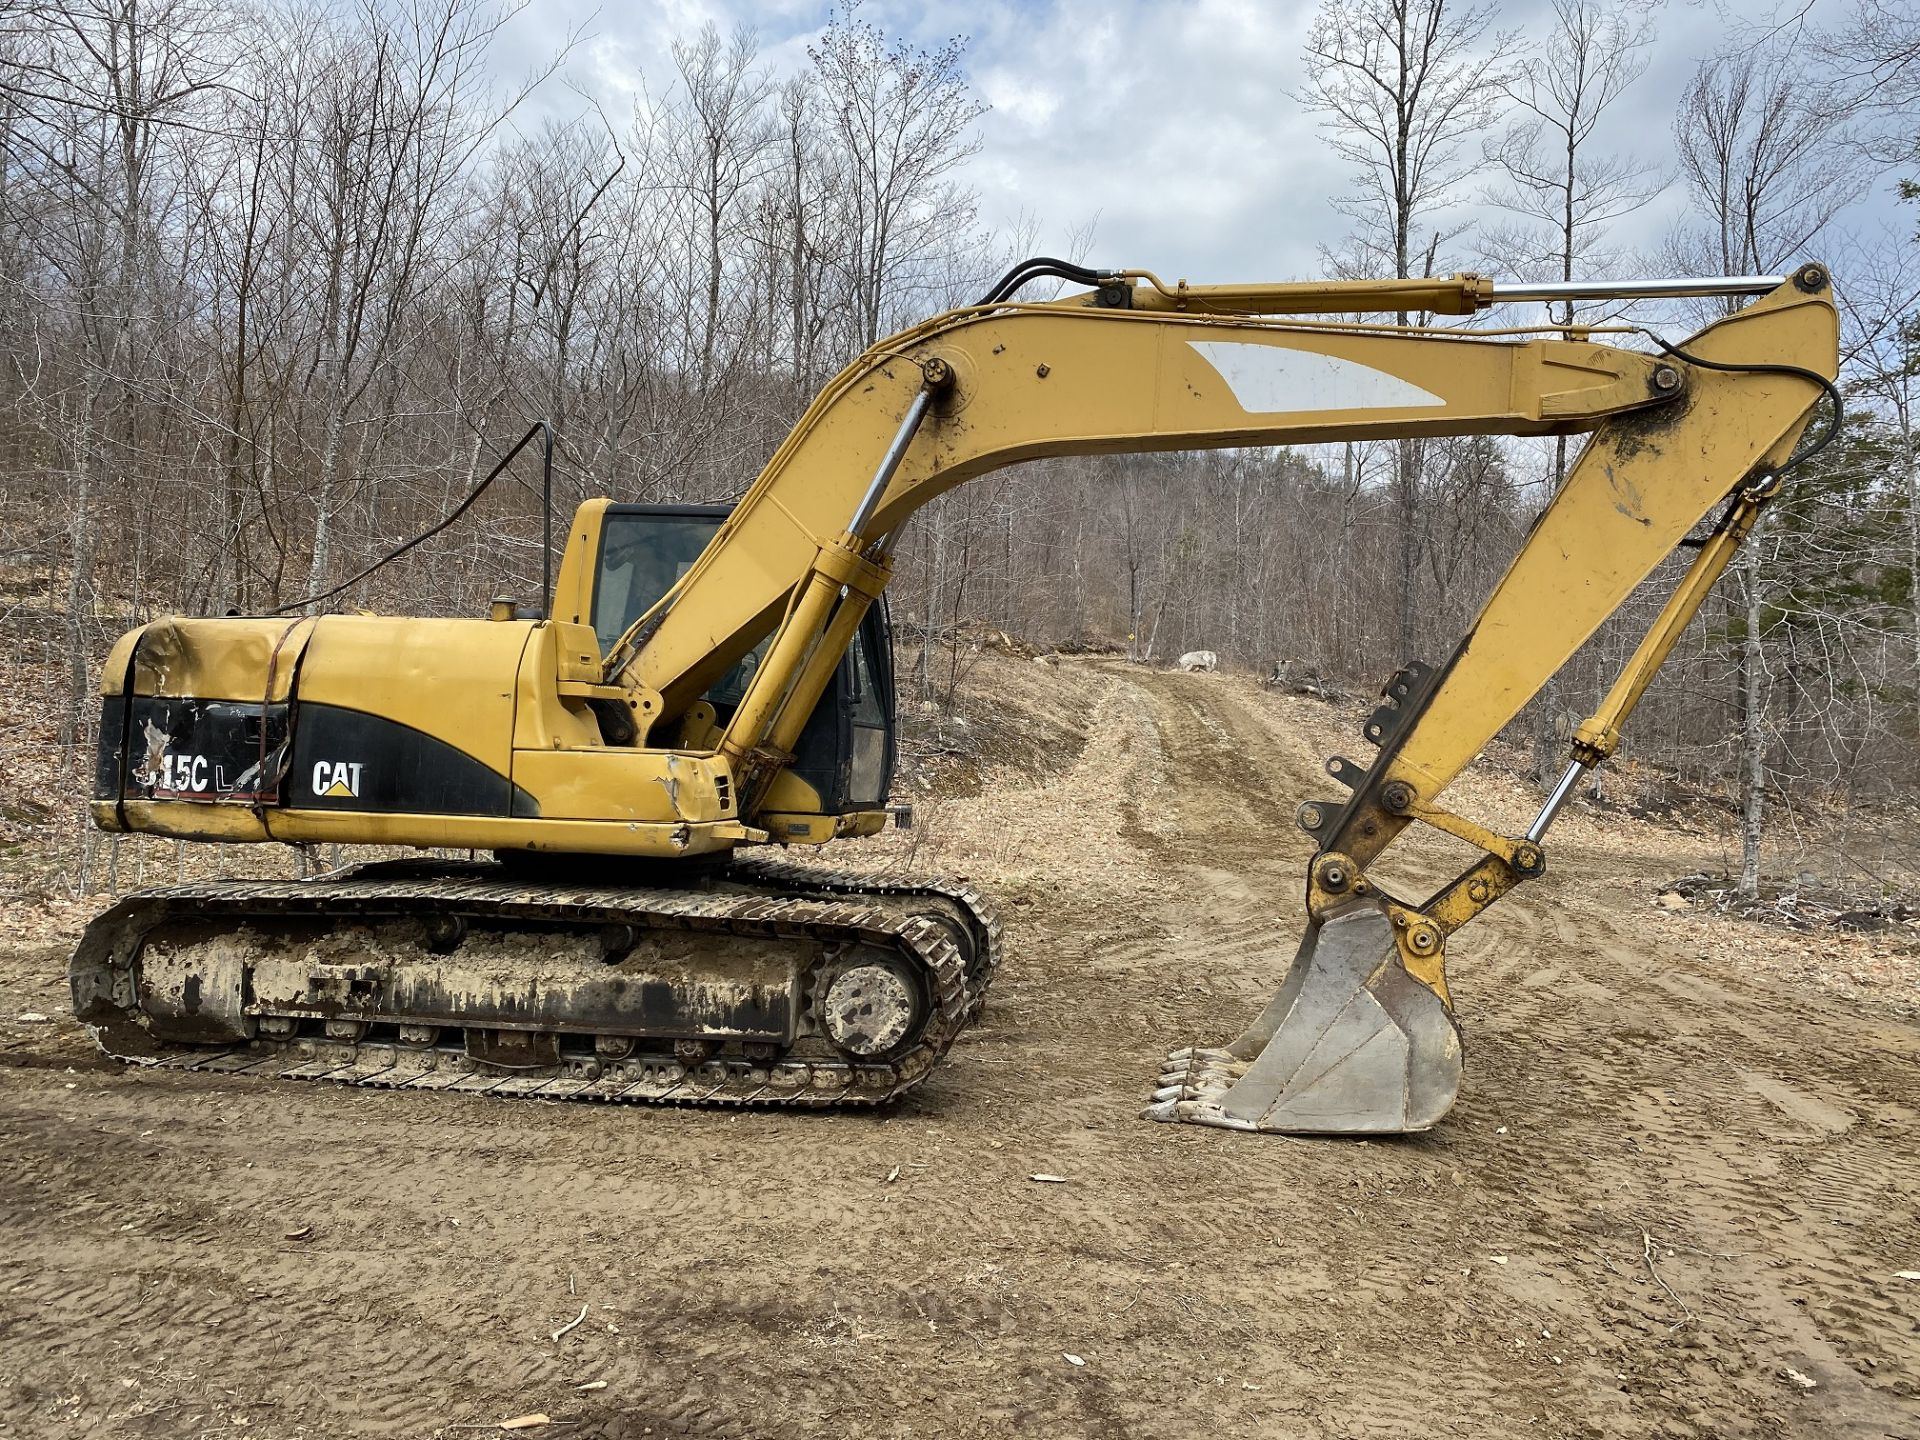 Caterpillar Excavator 315CL 1YD Bucket Stationary w/Thumb, Hrs: 8,003, 3YR Old Swing Motor Bushings, - Image 3 of 10